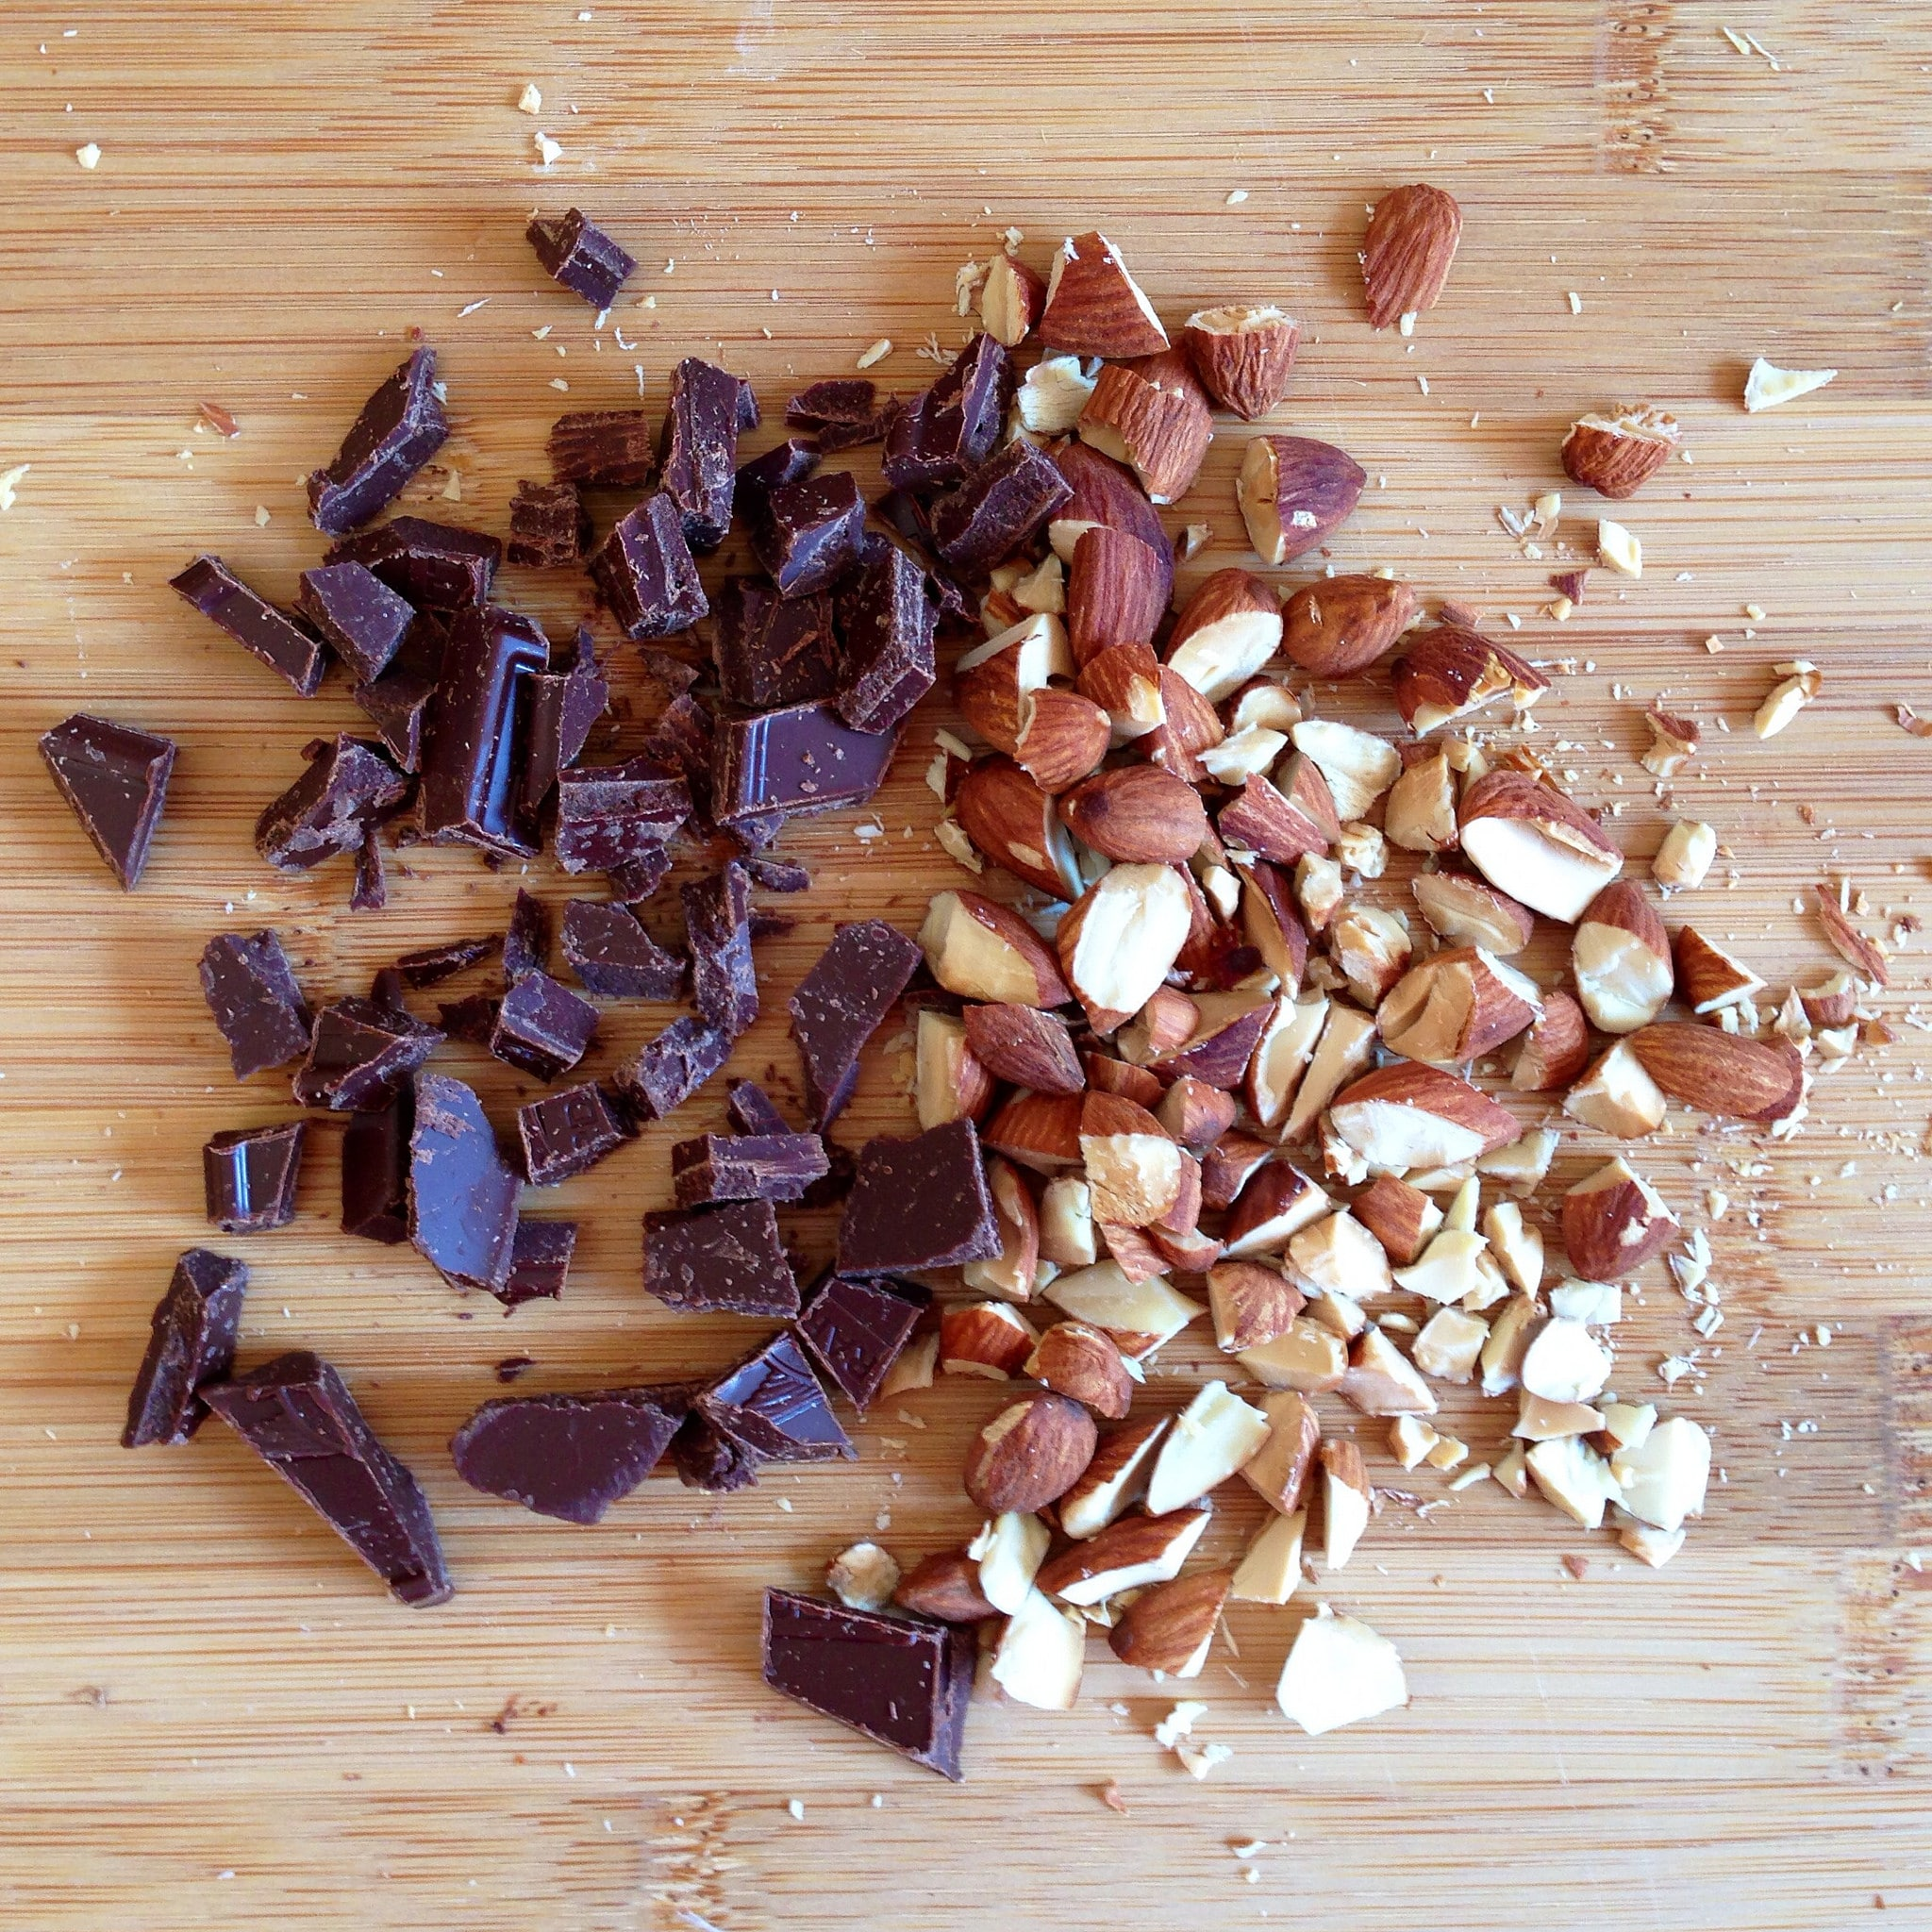 chocolate and nuts, pieces of chocolate